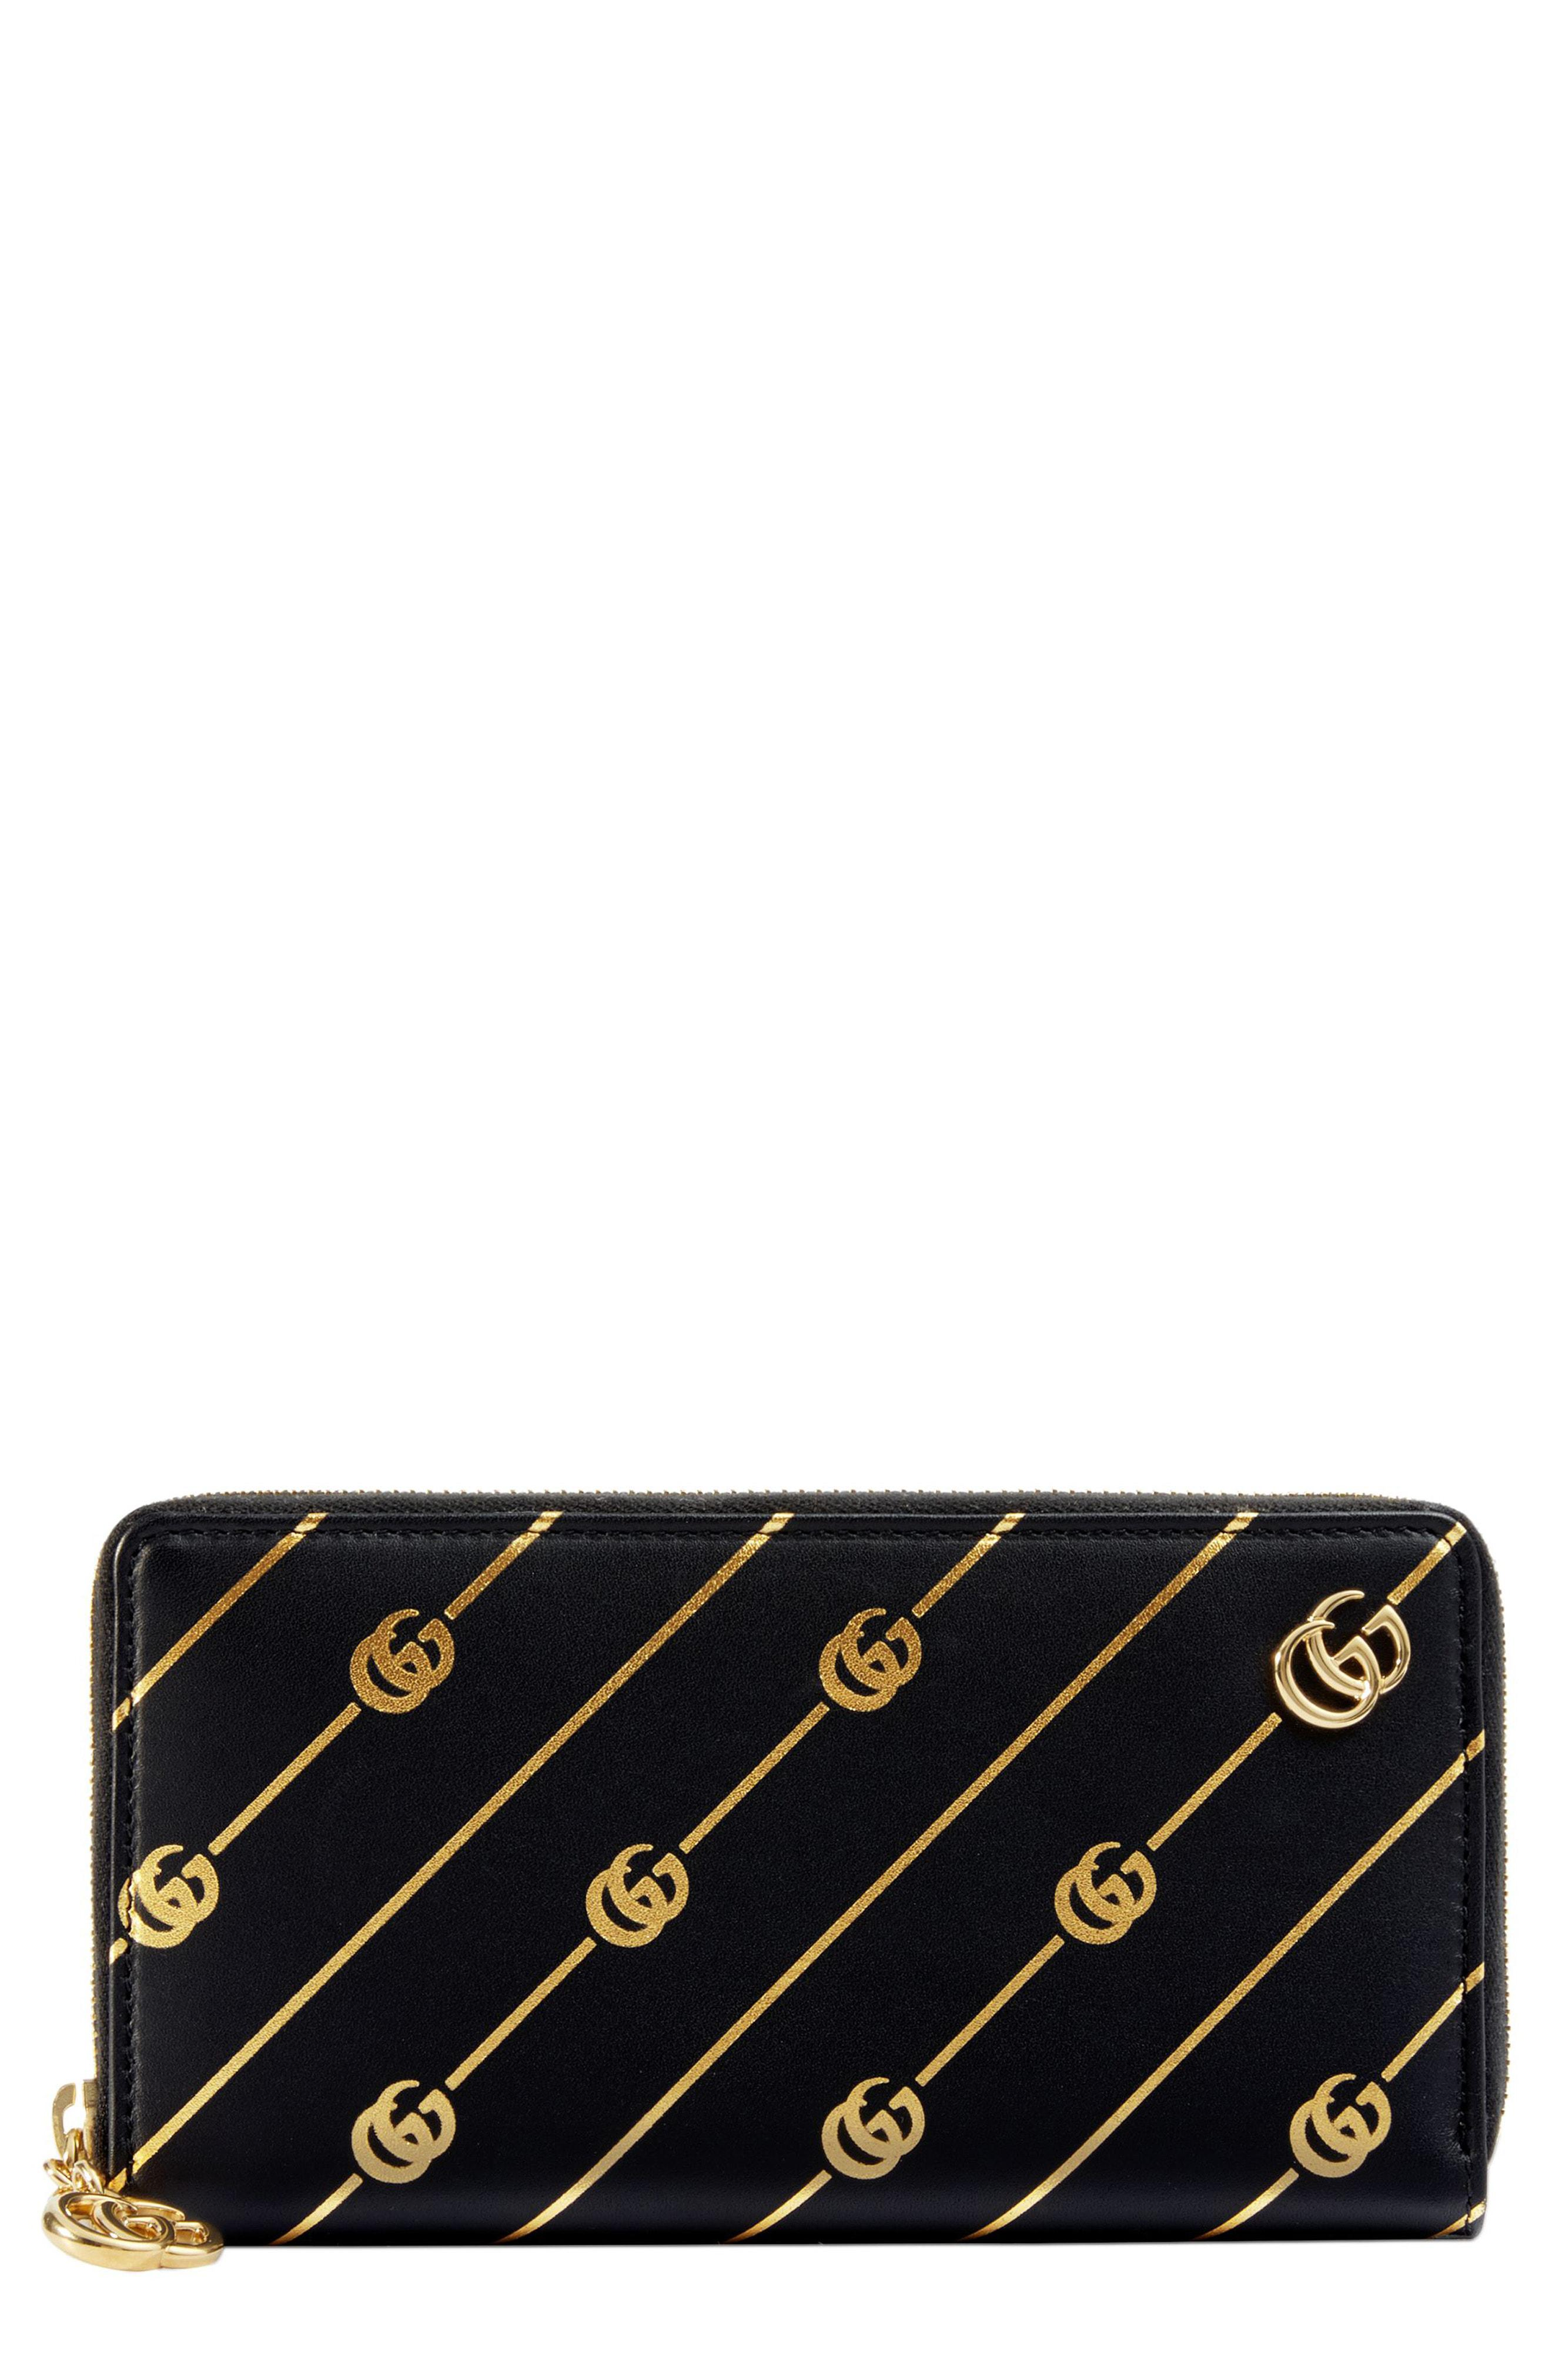 05a8b152d60 Lyst - Gucci Zip Around Wallet With Double G Stripe in Black